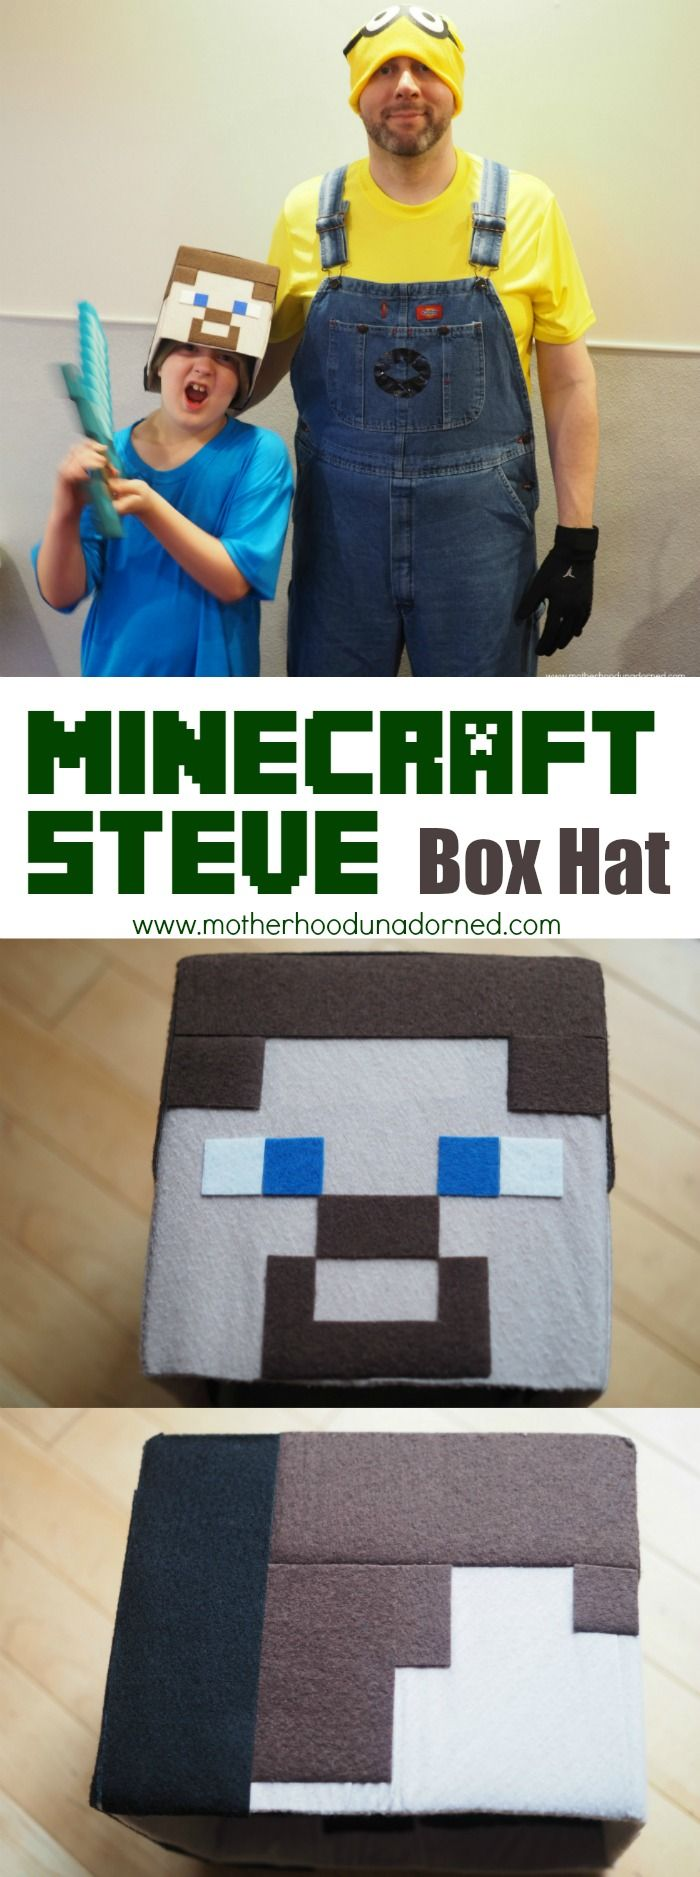 Tutorial DIY Minecraft Steve Box Hat Costume/Halloween costumes plus Minecraft inspired  sc 1 st  Pinterest & Tutorial DIY Minecraft Steve Box Hat Costume/Halloween costumes ...